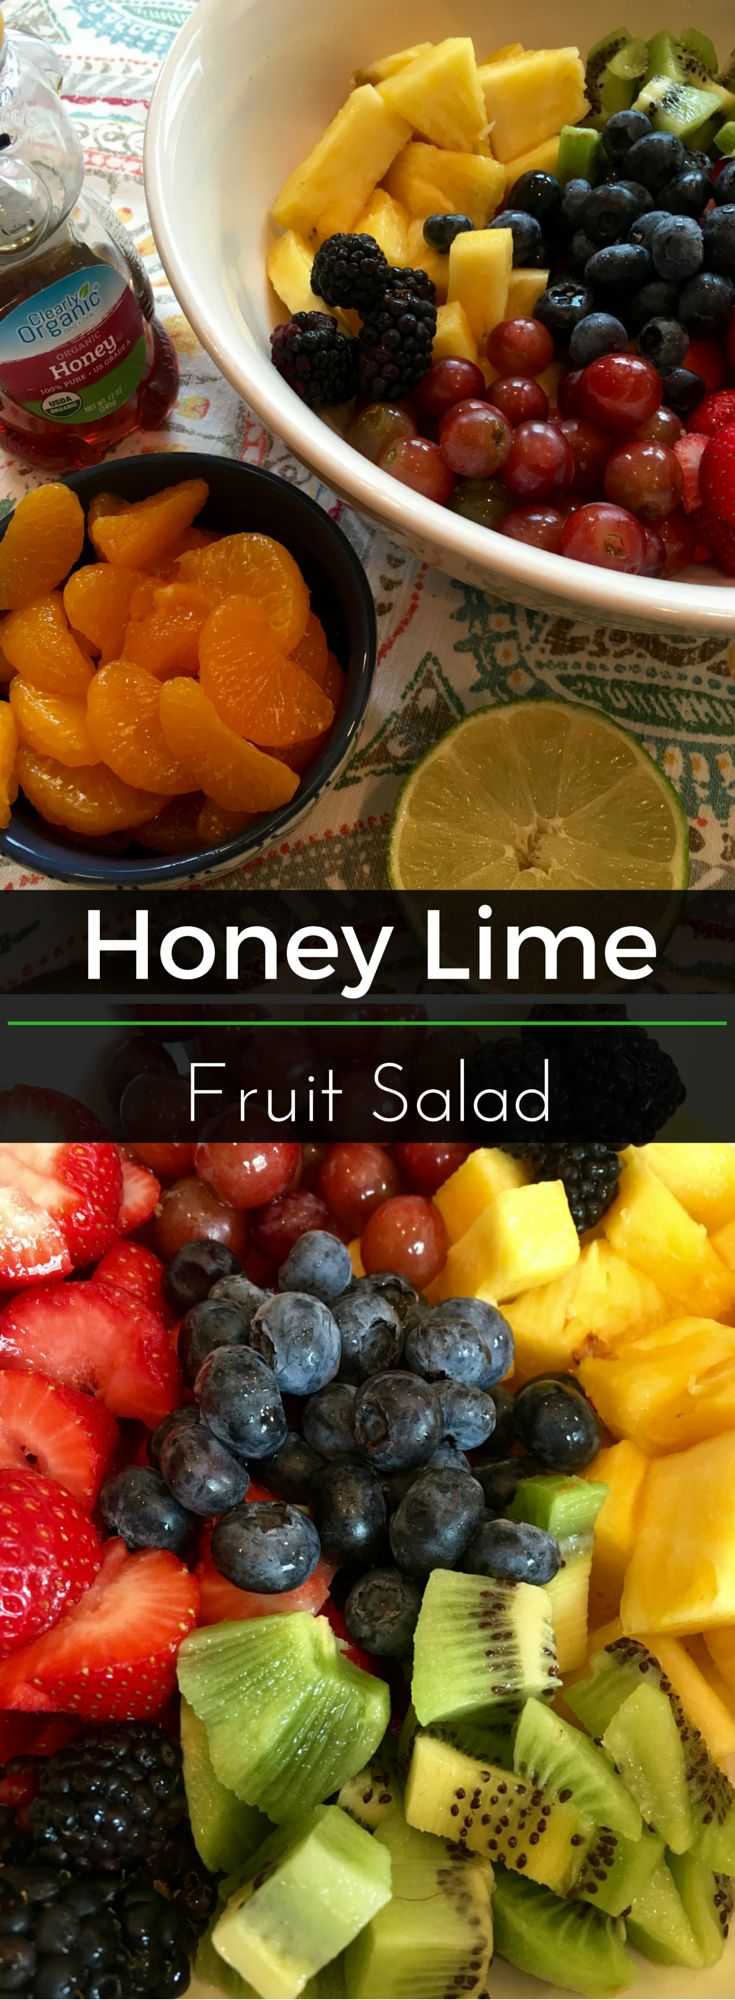 Honey Lime Fruit Salad - This bright, nutritious salad is perfect for summer cookouts and celebrations! It's so easy to throw together and the honey lime dressing compliments the fruit perfectly. So many options to mix up the fruit and toppings. | Clearly Organic Nutritionist Corner